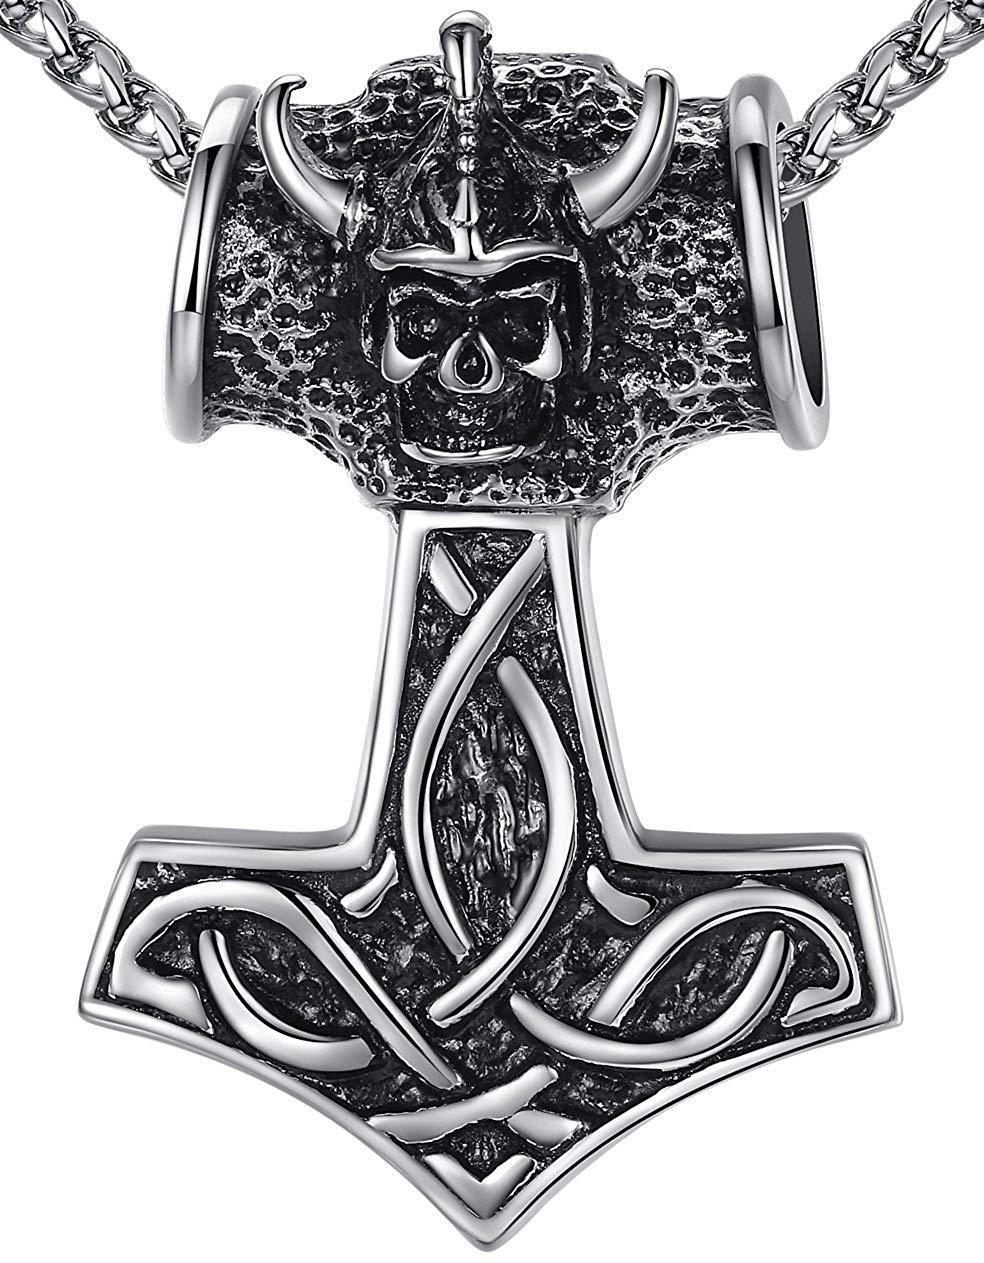 "Men's Stainless Steel Large Heavy Celtic Knot Viking Thor's Hammer Pendant Necklace, 24"", aap101"